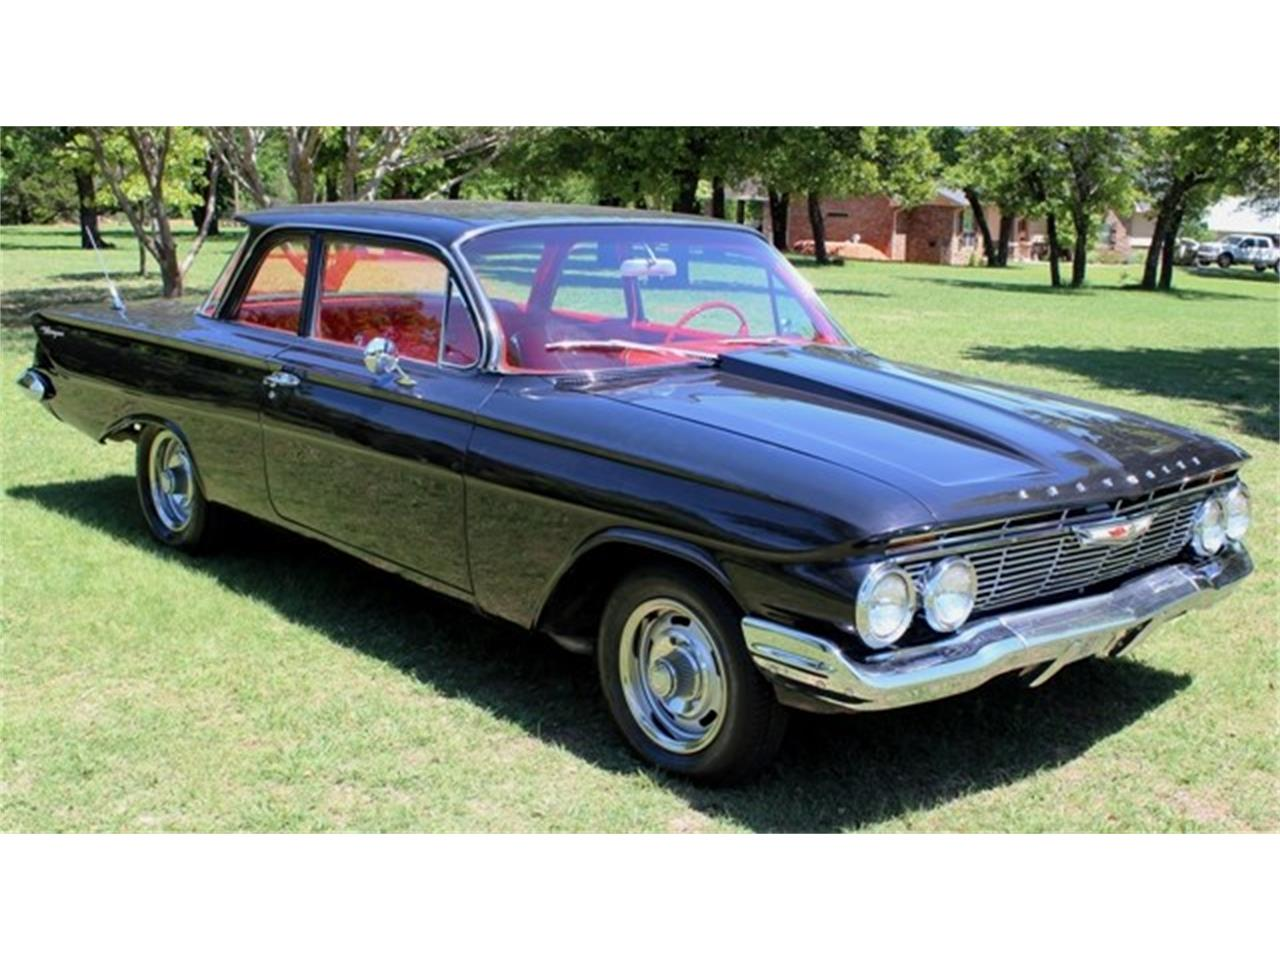 1961 Chevrolet Biscayne (CC-1394168) for sale in Blanchard, Oklahoma